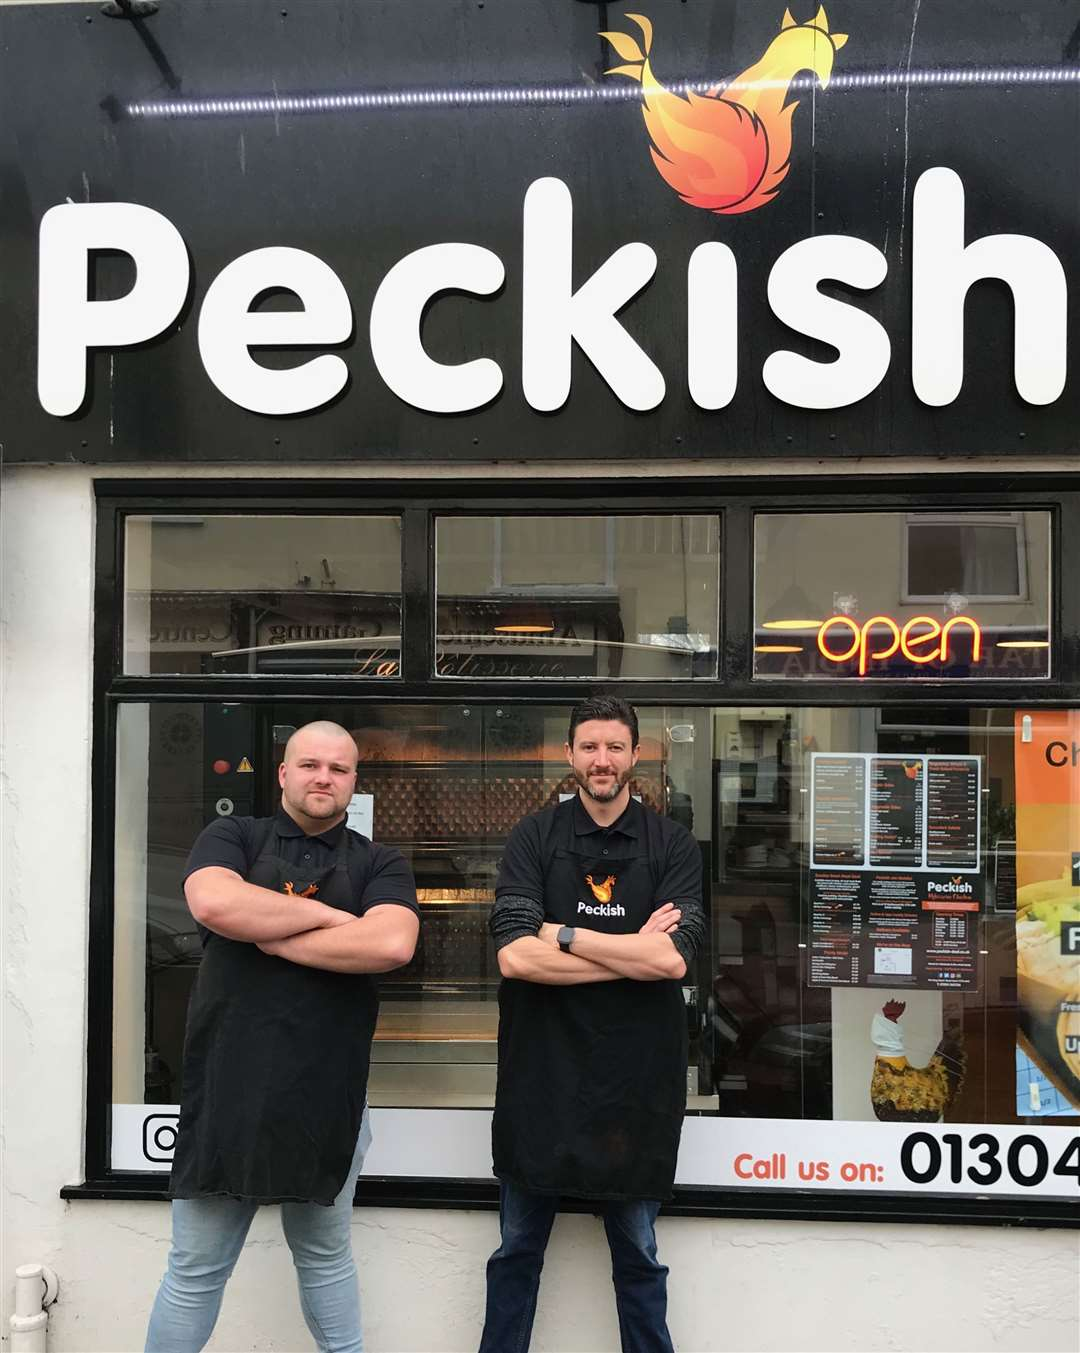 Head chef Mike Cox and chef Ben Holmes-Brown at Peckish